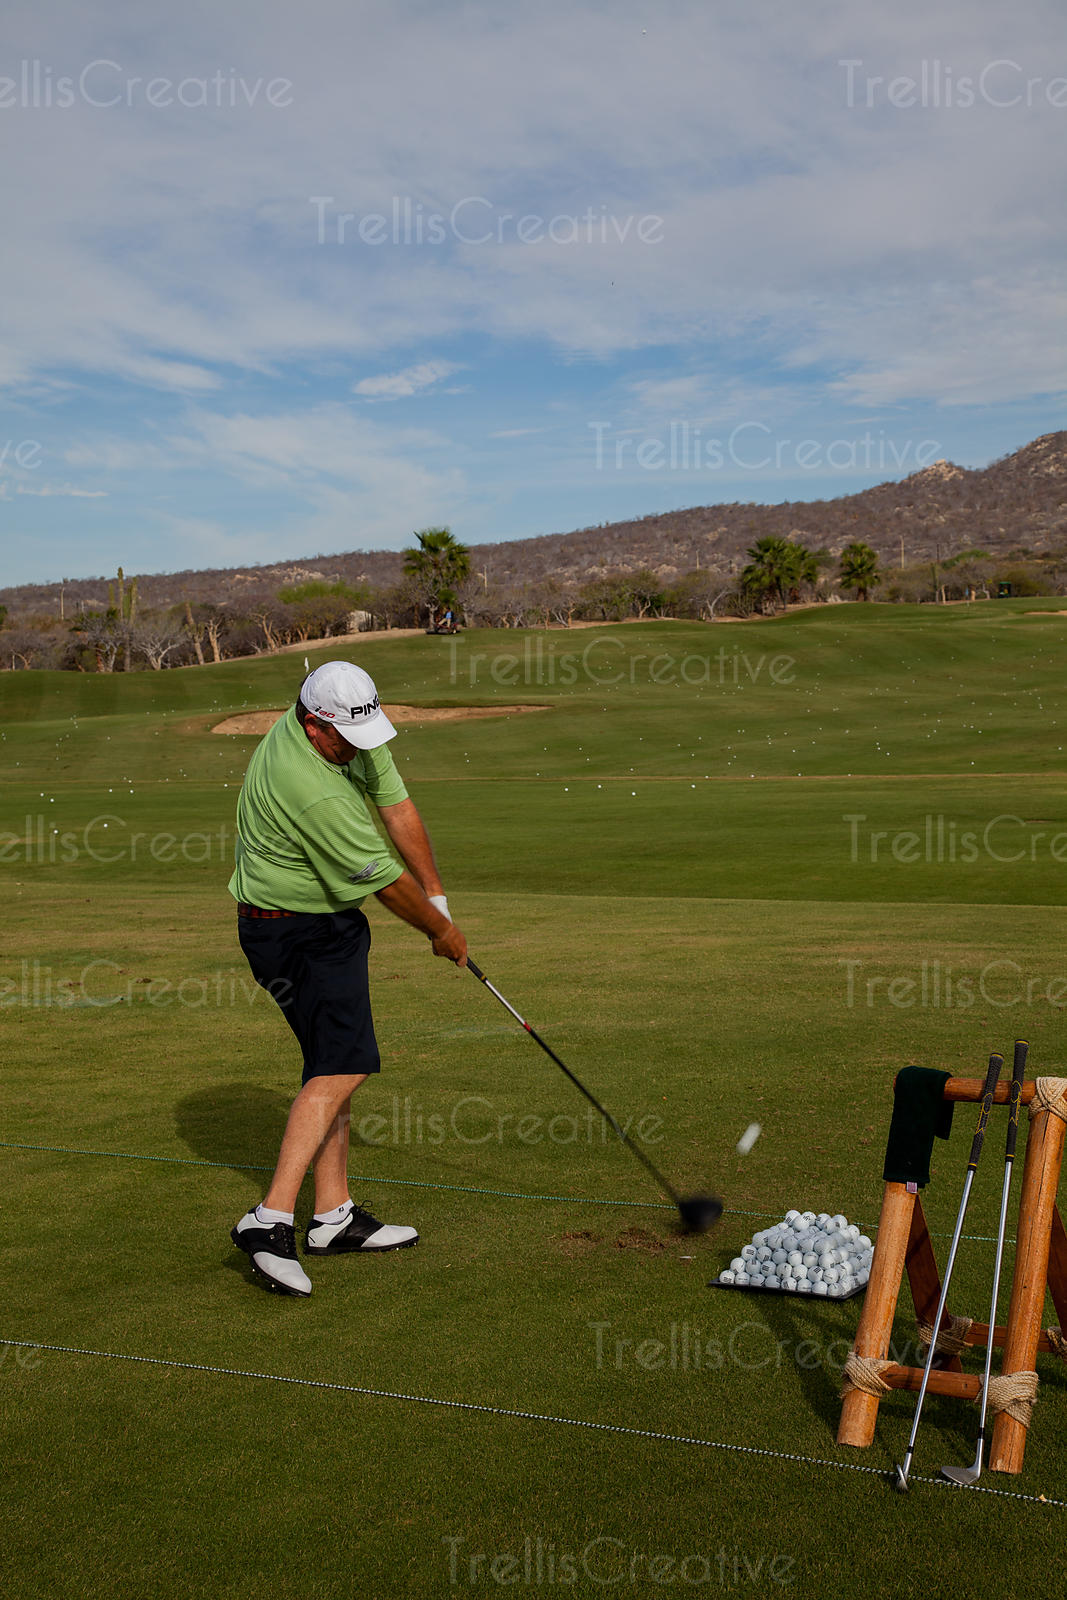 A golfer practicing his drive at a golf driving range